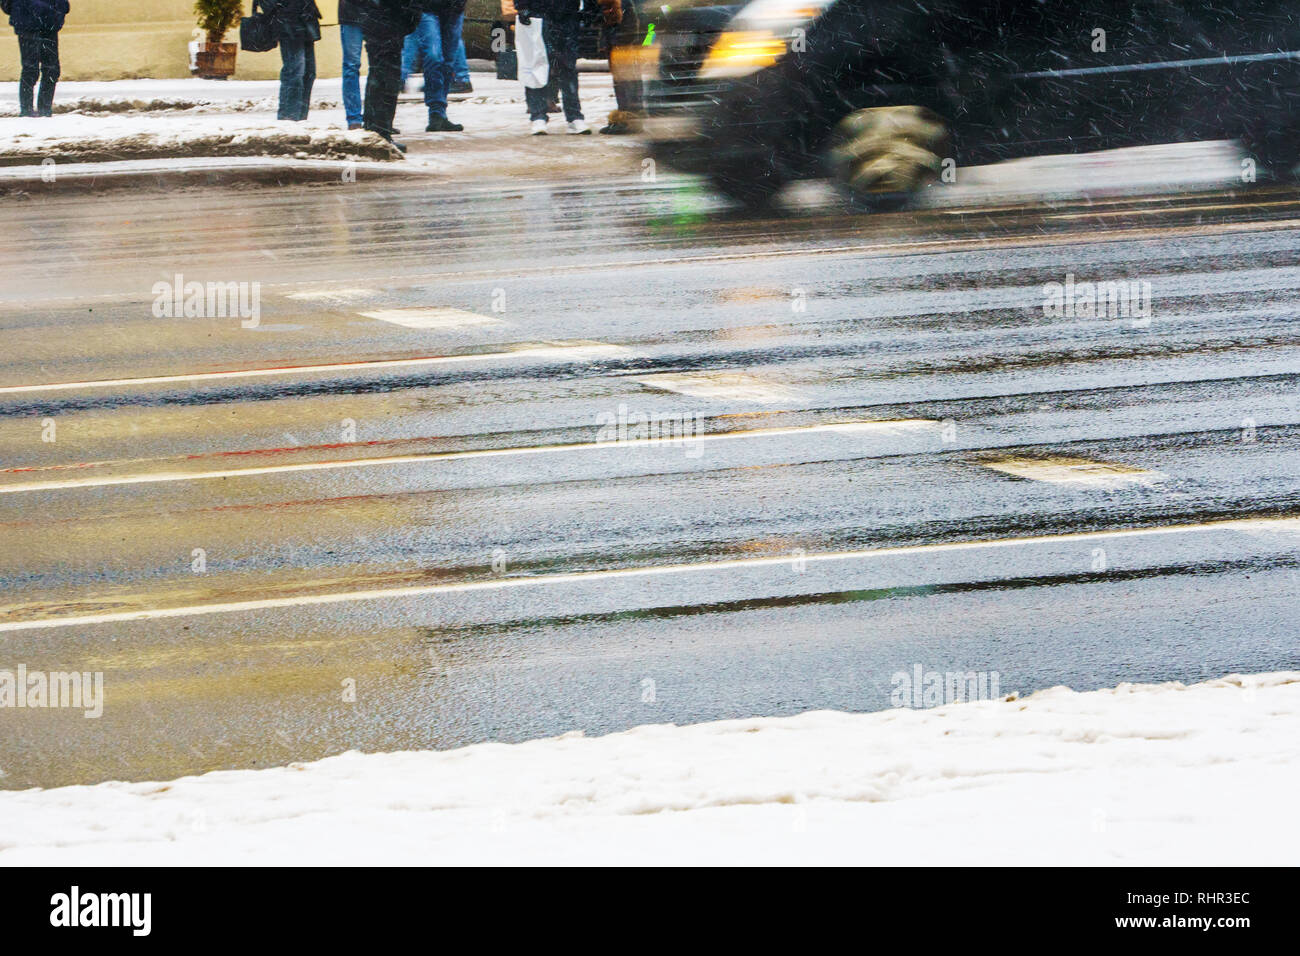 Crosswalk. Slippery wet asphalt city road in winter. Driving cars are blurred in motion. Waiting for the resolving light of the traffic light concept - Stock Image